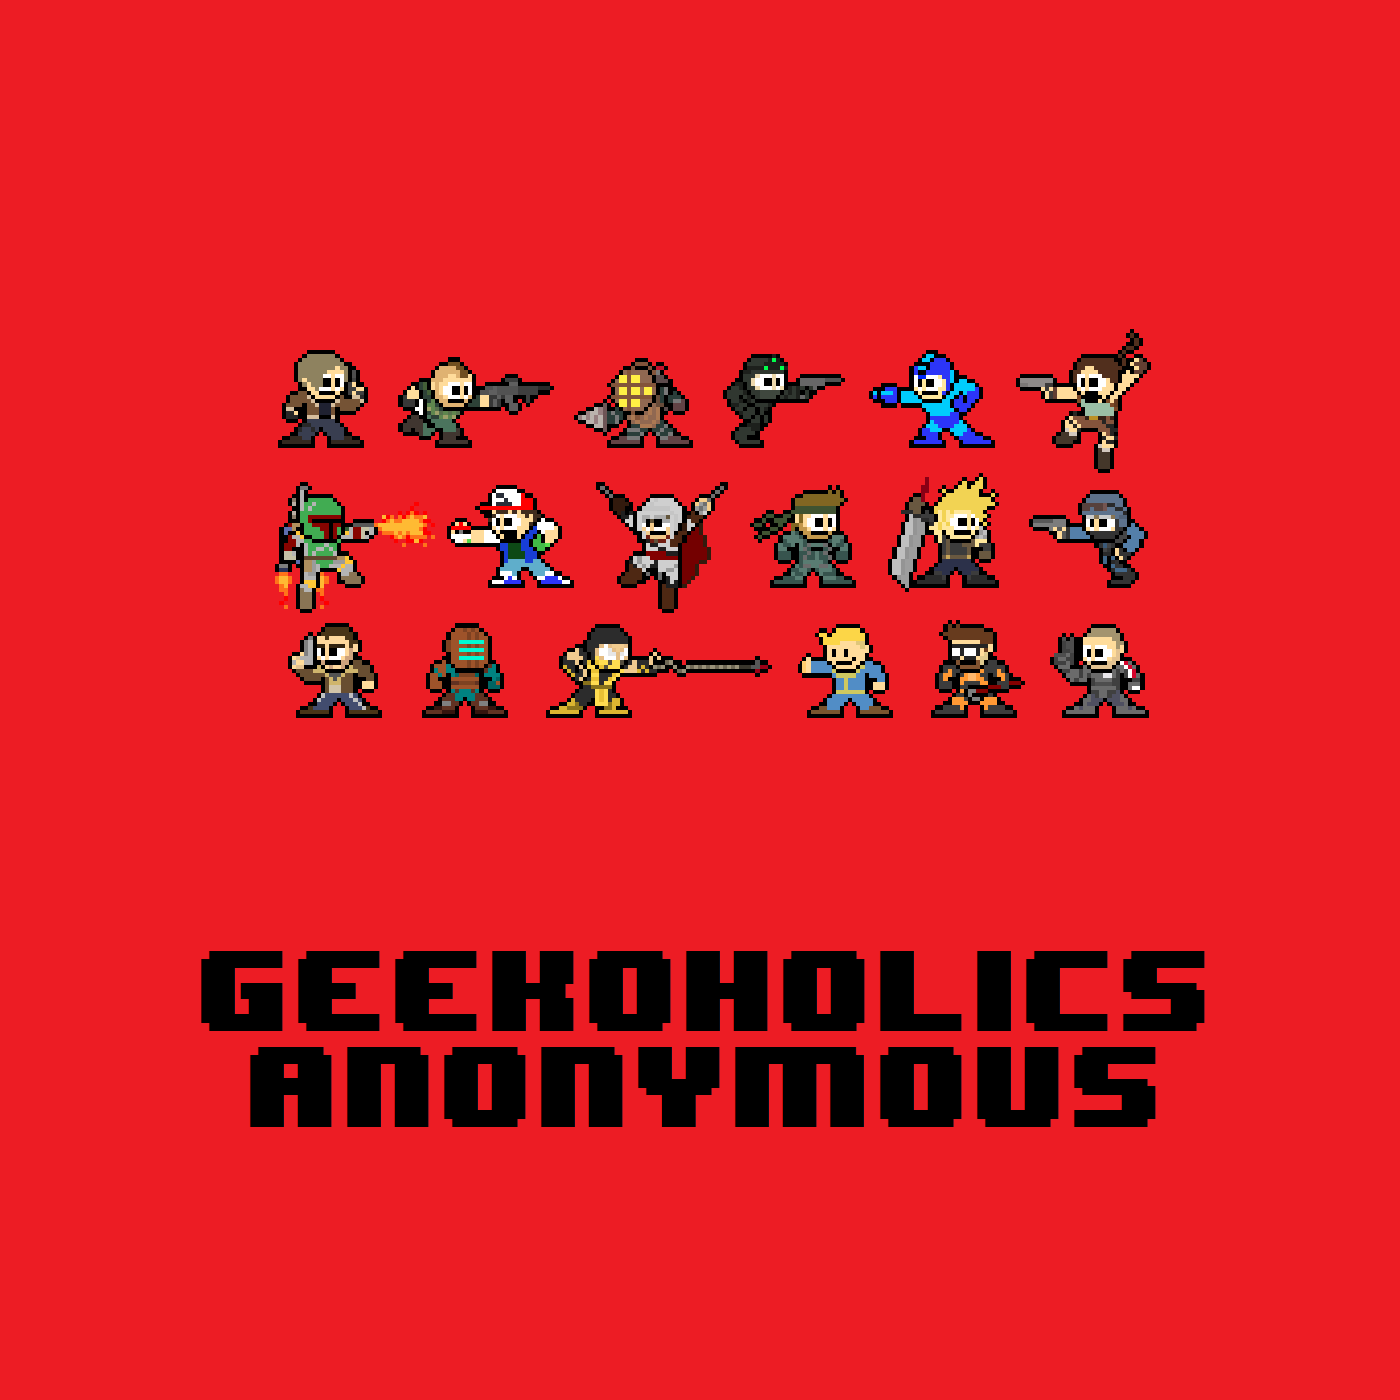 Metroid Dread, Nintendo Switch OLED Model,Back 4 Blood and more - Geekoholics Anonymous Podcast 327 show art